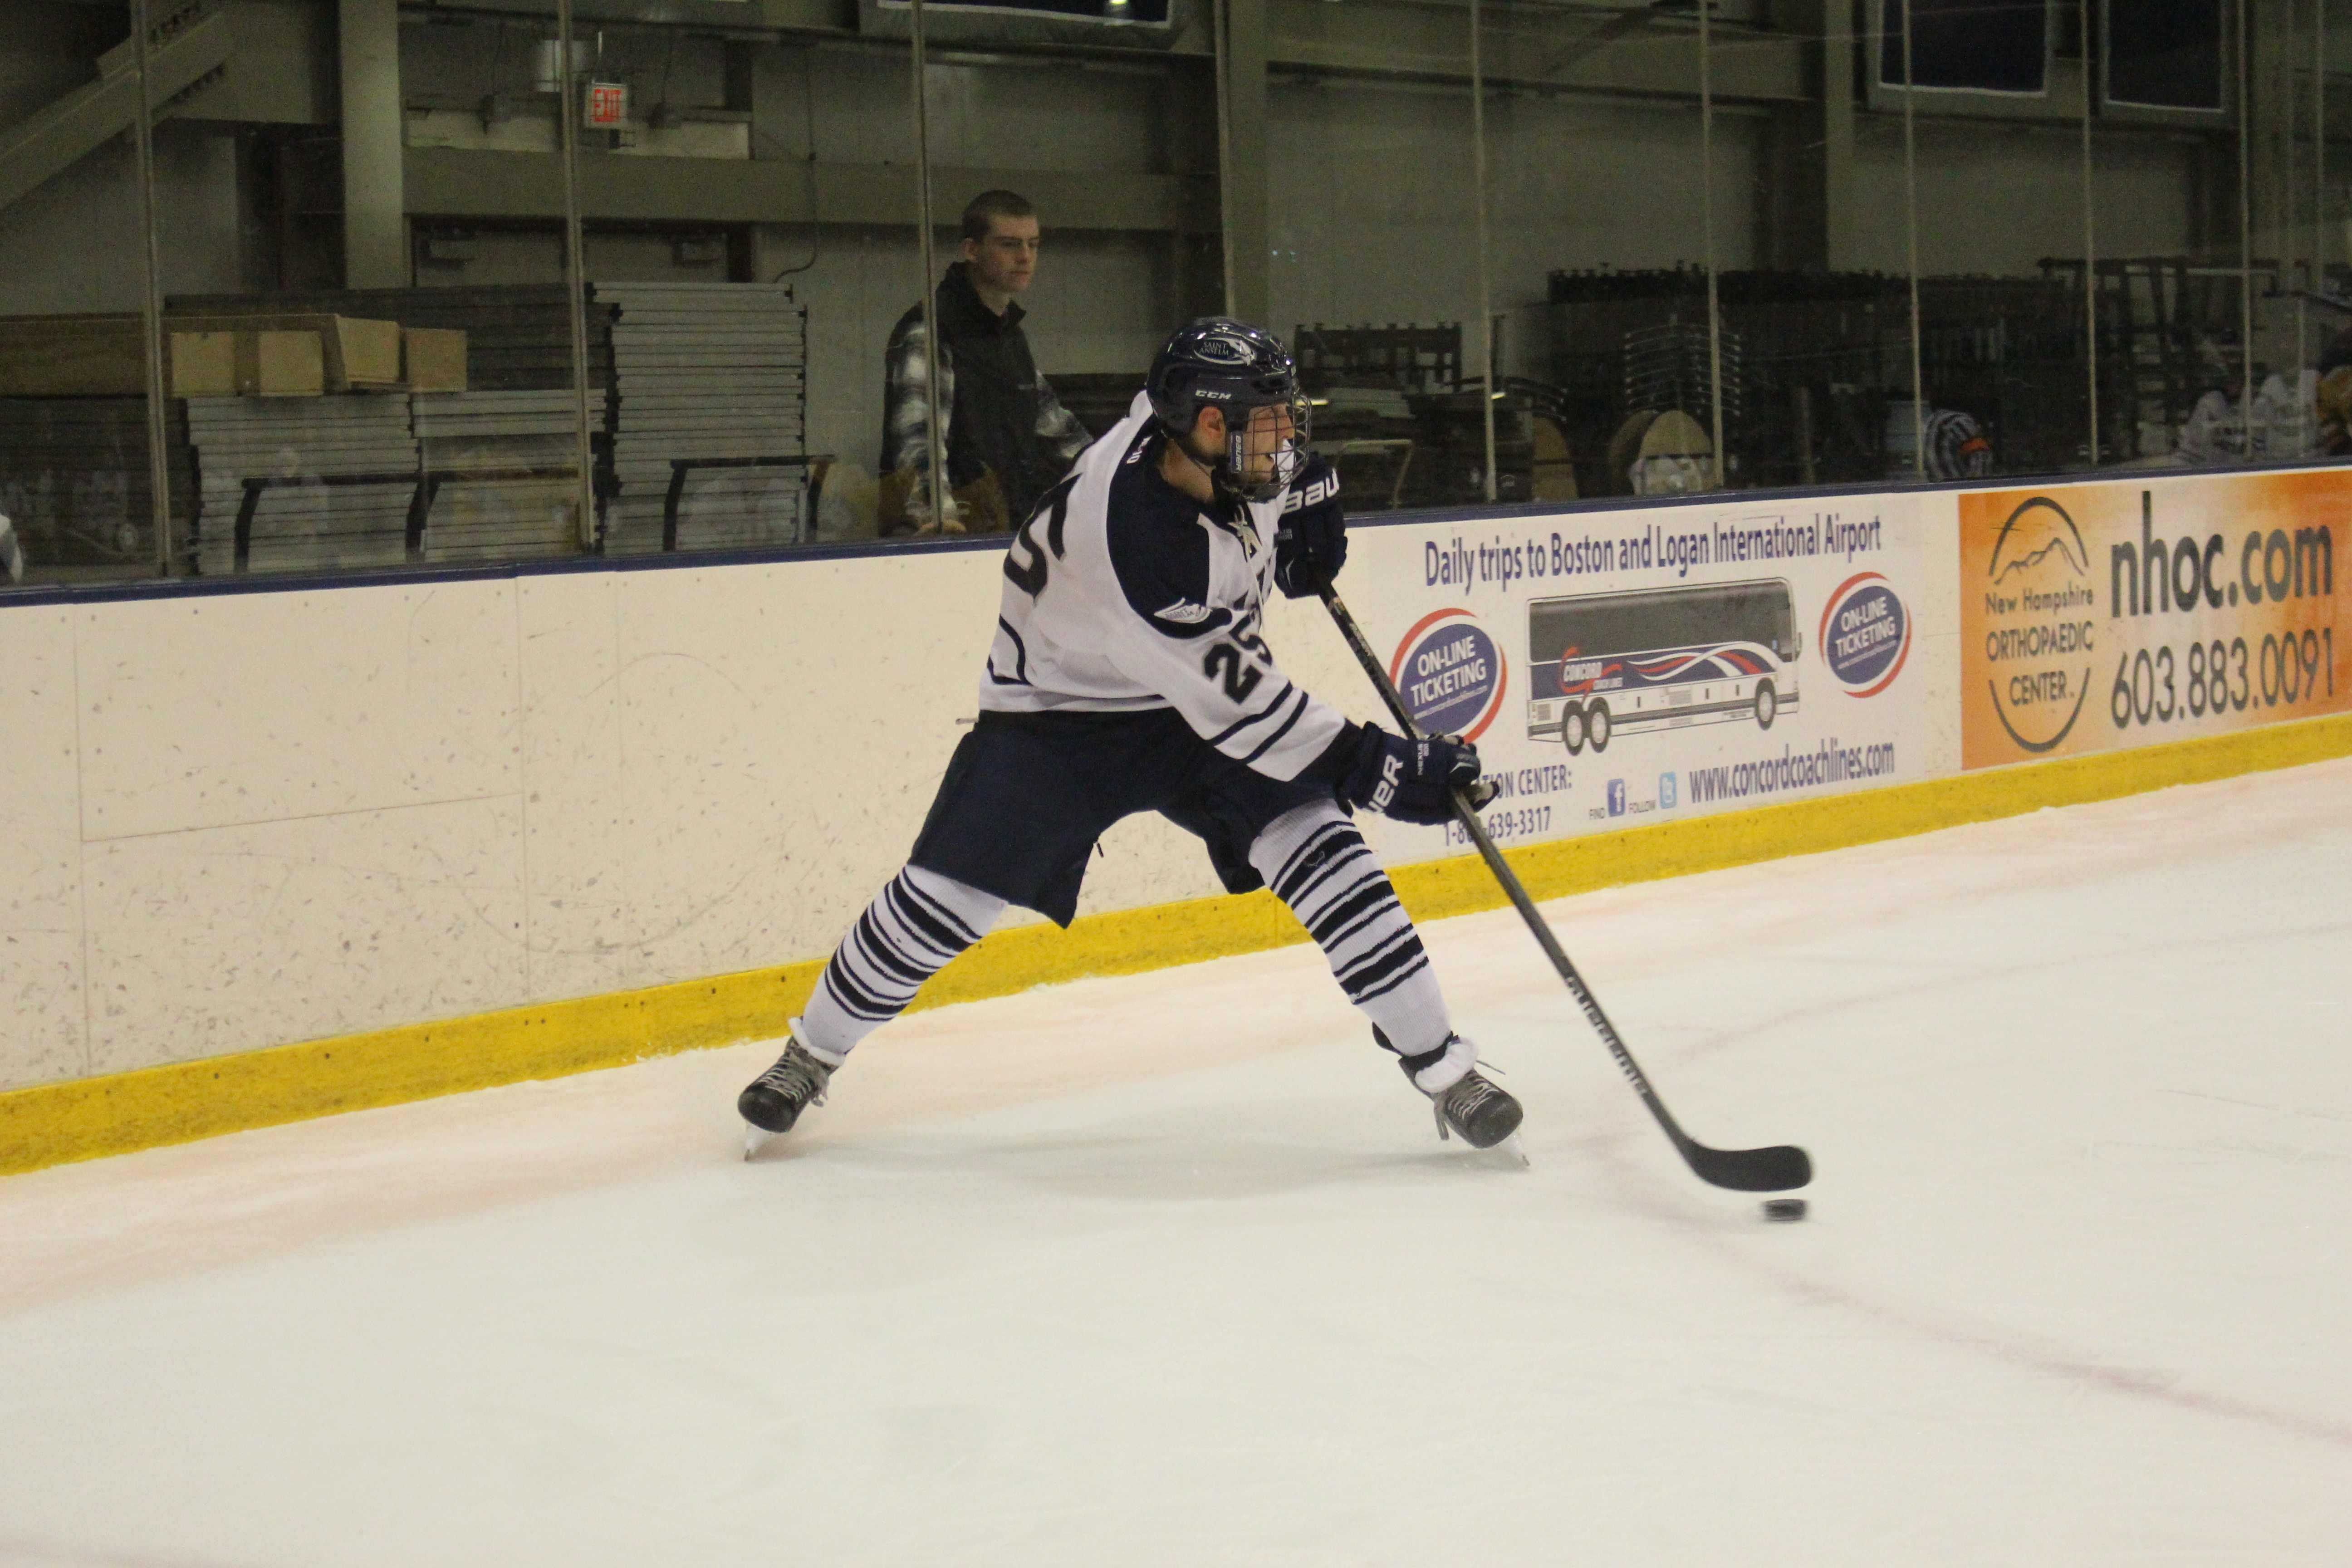 Senior co-alternate captain Vin D'Amato on the ice for the Hawks against SNHU last season.